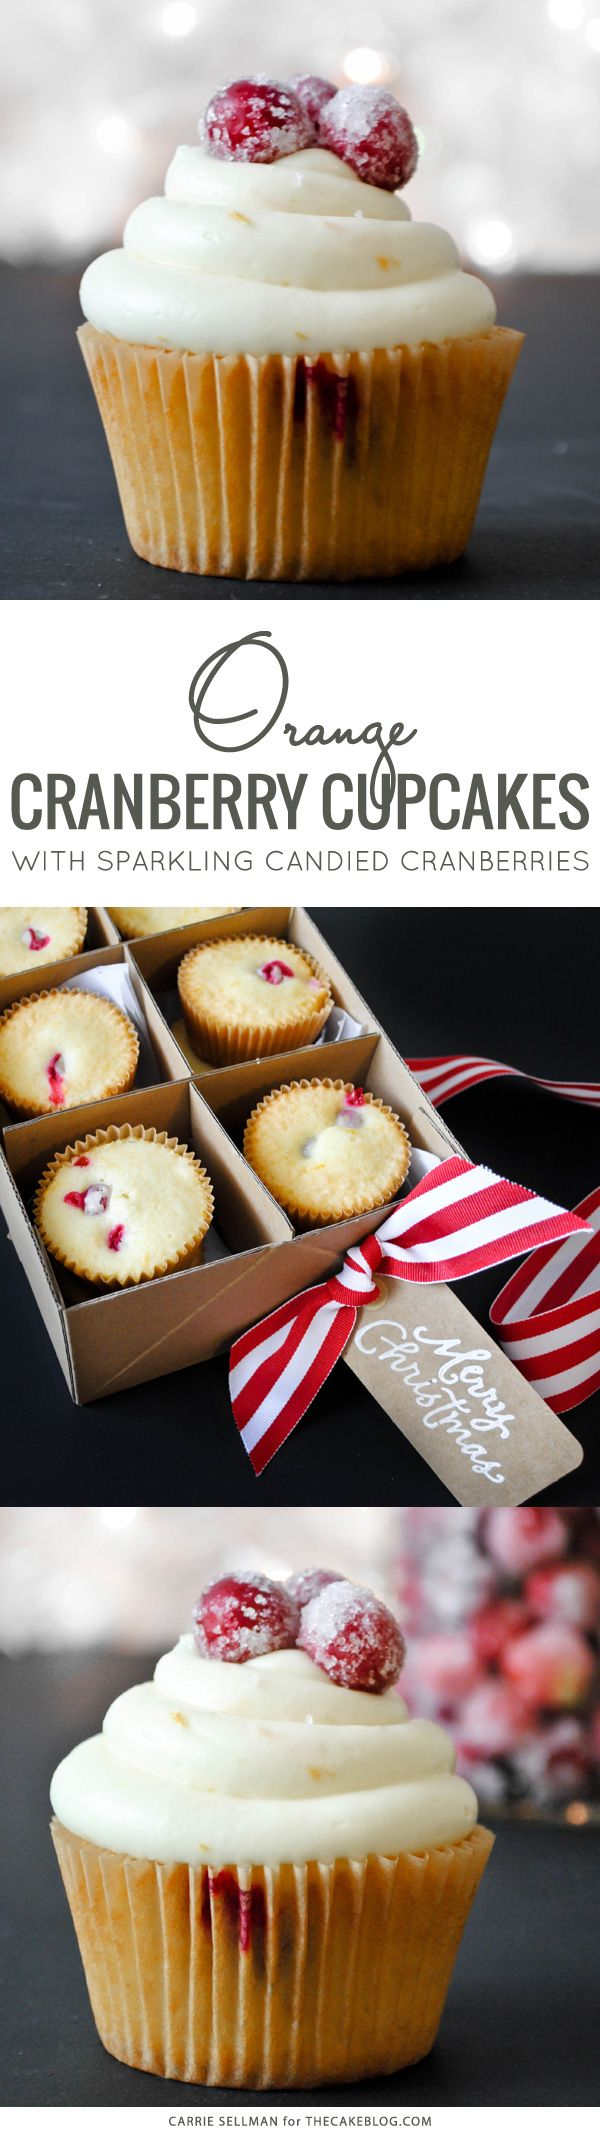 Cranberry Orange Cupcakes with sugared cranberries! Delicious for holiday parties and Christmas dessert! | Carrie Sellman for TheCakeBlog.com